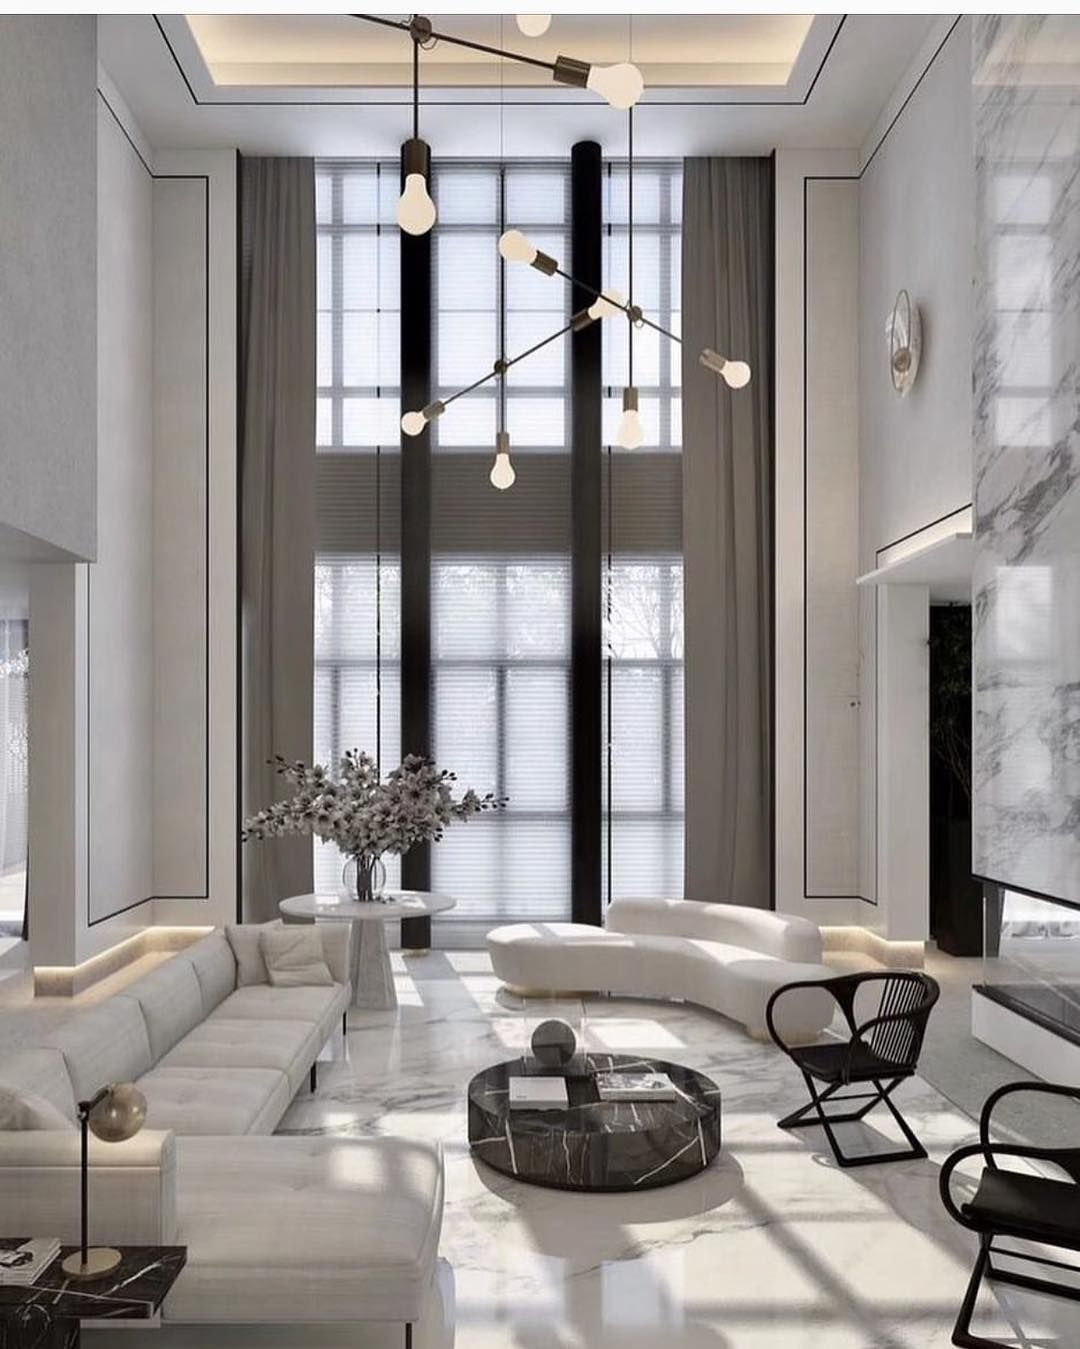 Pin By Oenaysavd On Dream Home In 2021 High Ceiling Living Room Luxury Living Room Black And White Living Room